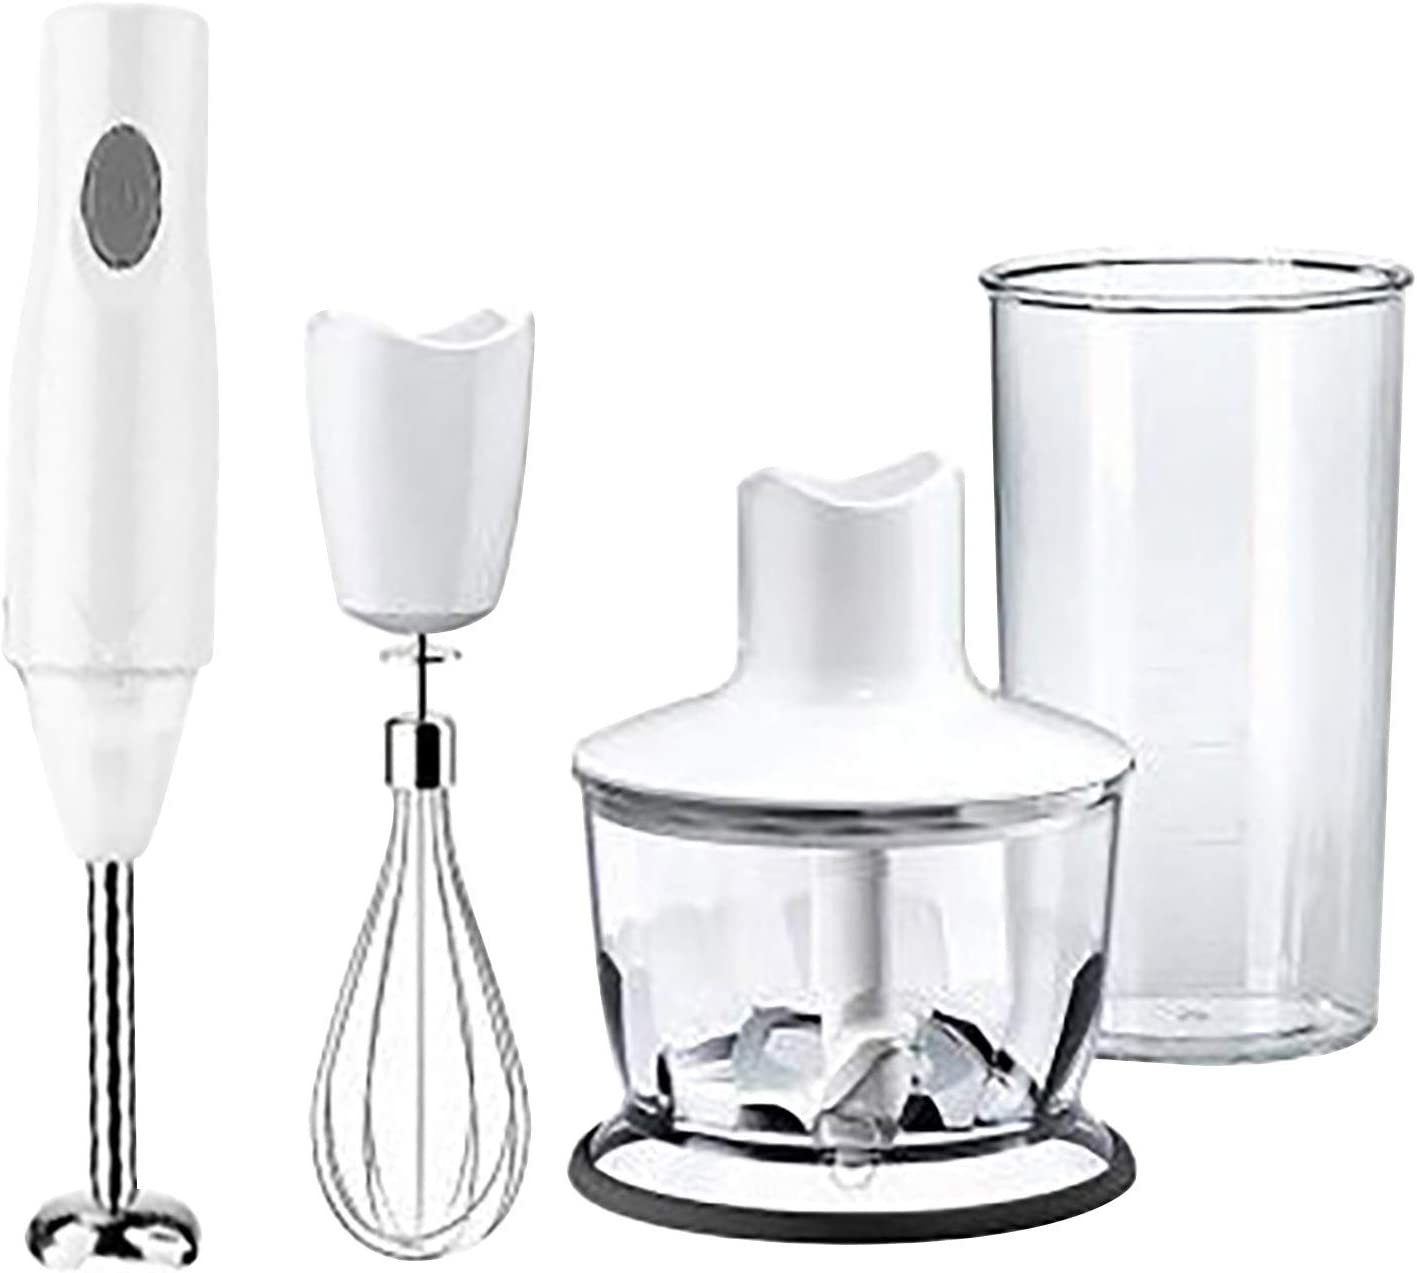 Alueery Stirrer Professional Immersion Hand Blender Rated for Professional Cooking Projects